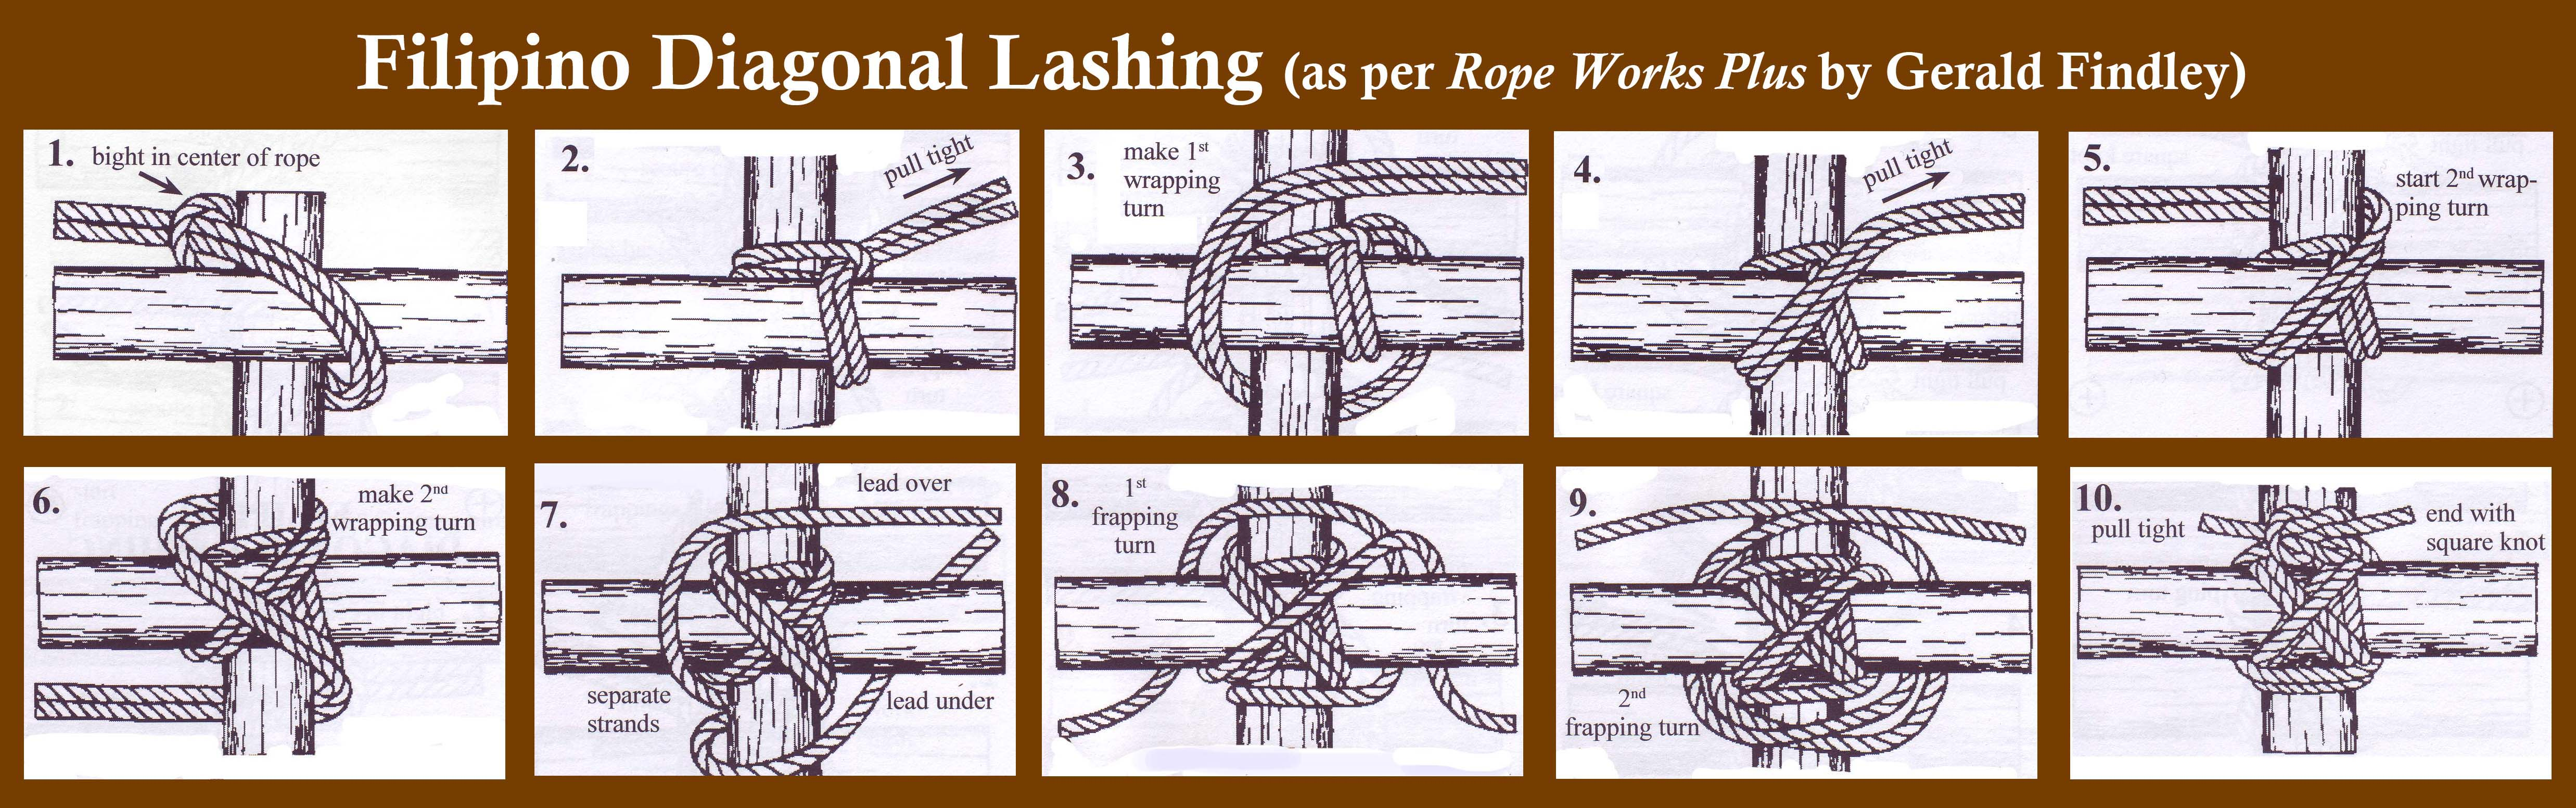 filipino diagonal lashing diagonal lashing scout pioneering